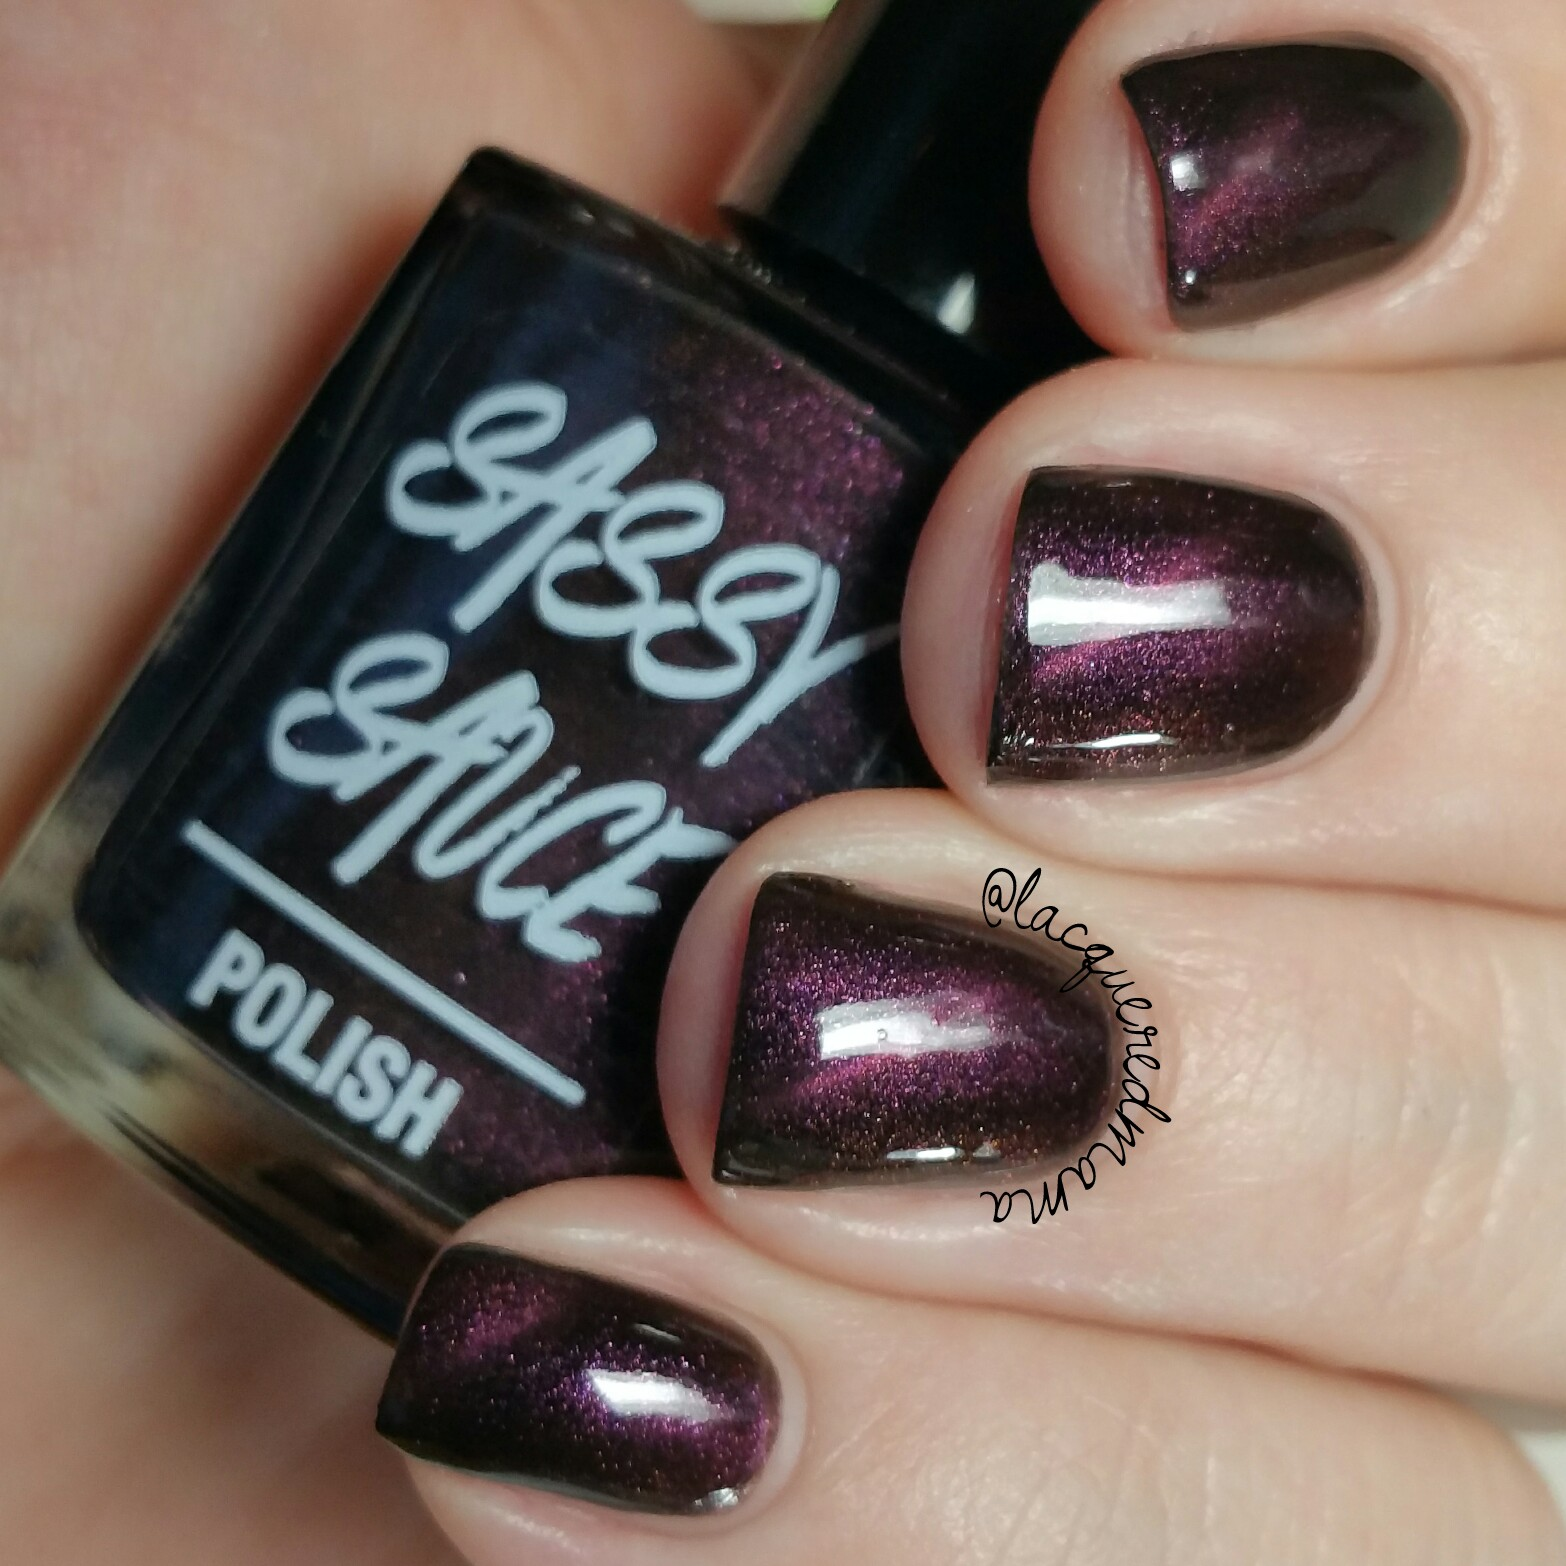 LacqueredMama: Sassy Sauce Polish - March Releases